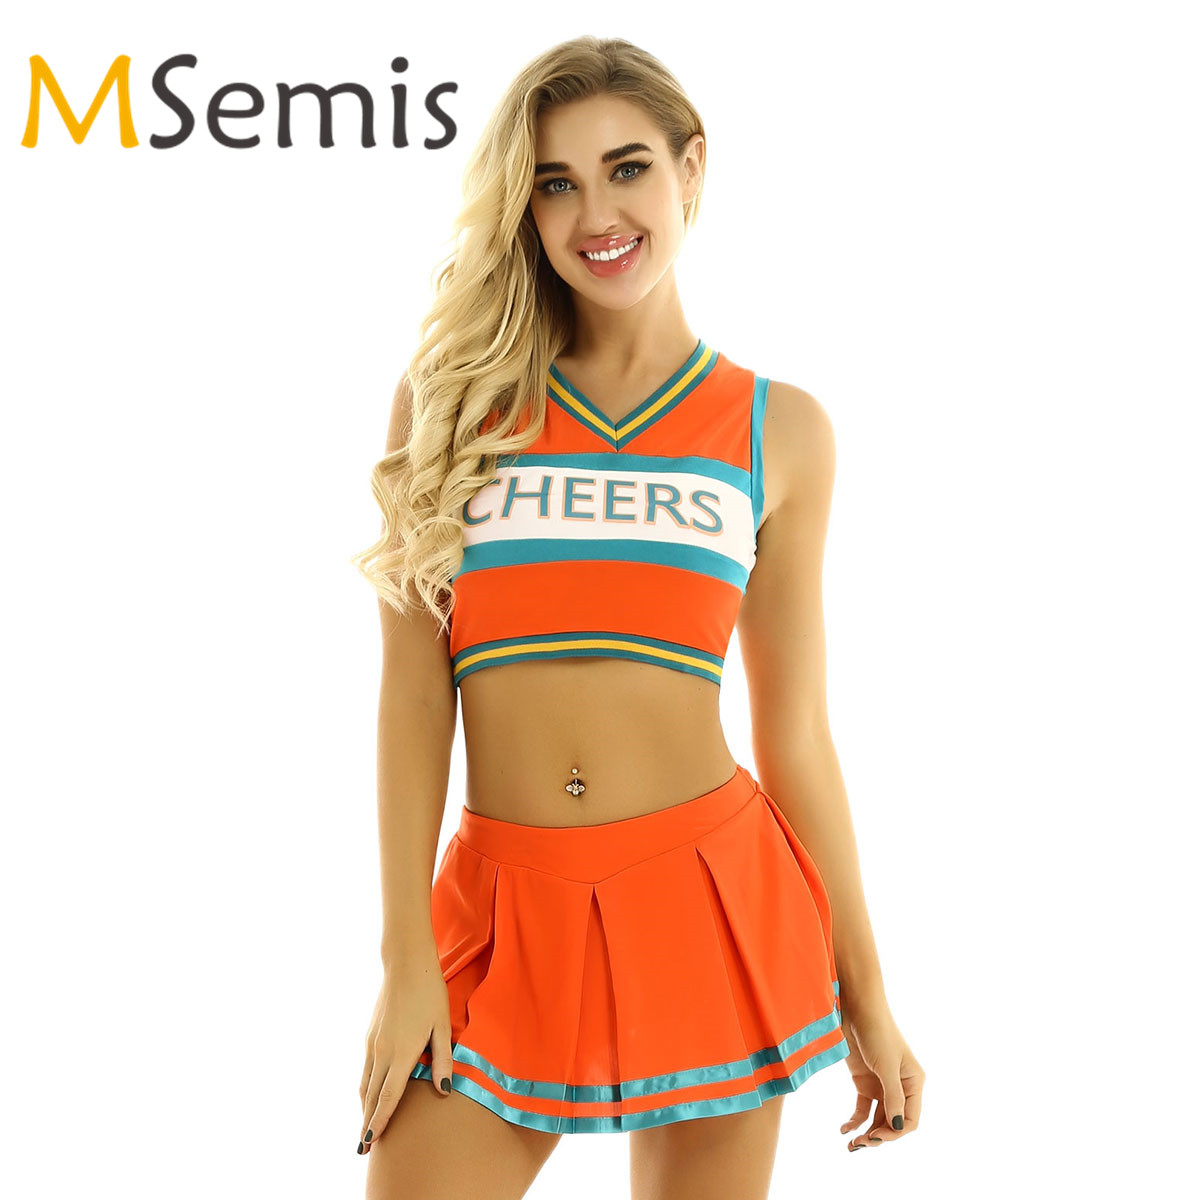 Women's Cheerleading Sports Uniform Cheerleader Costume Cosplay Outfit Sleeveless Crop Top With Mini Pleated Skirt For Dancing